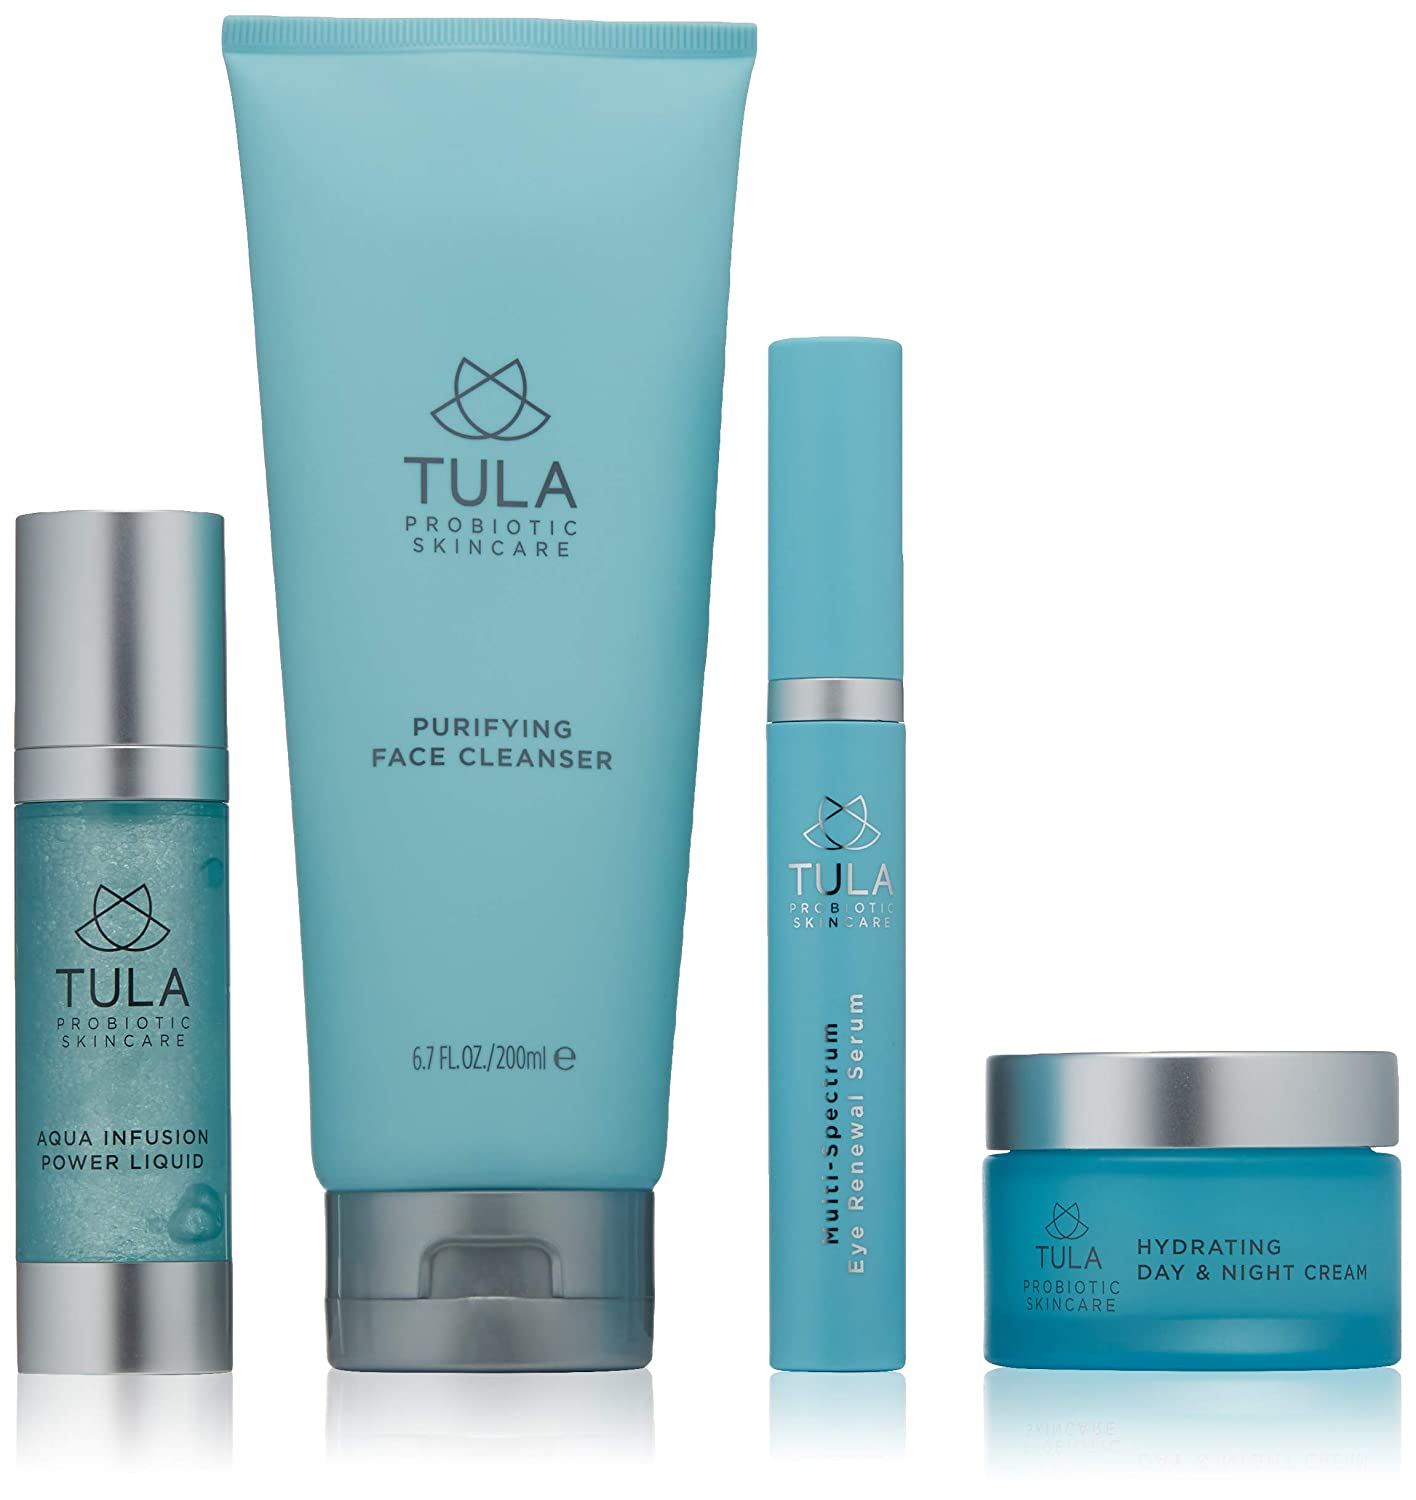 TULA Probiotic Skin Care Anti-Aging Discovery Set (Full Sized)